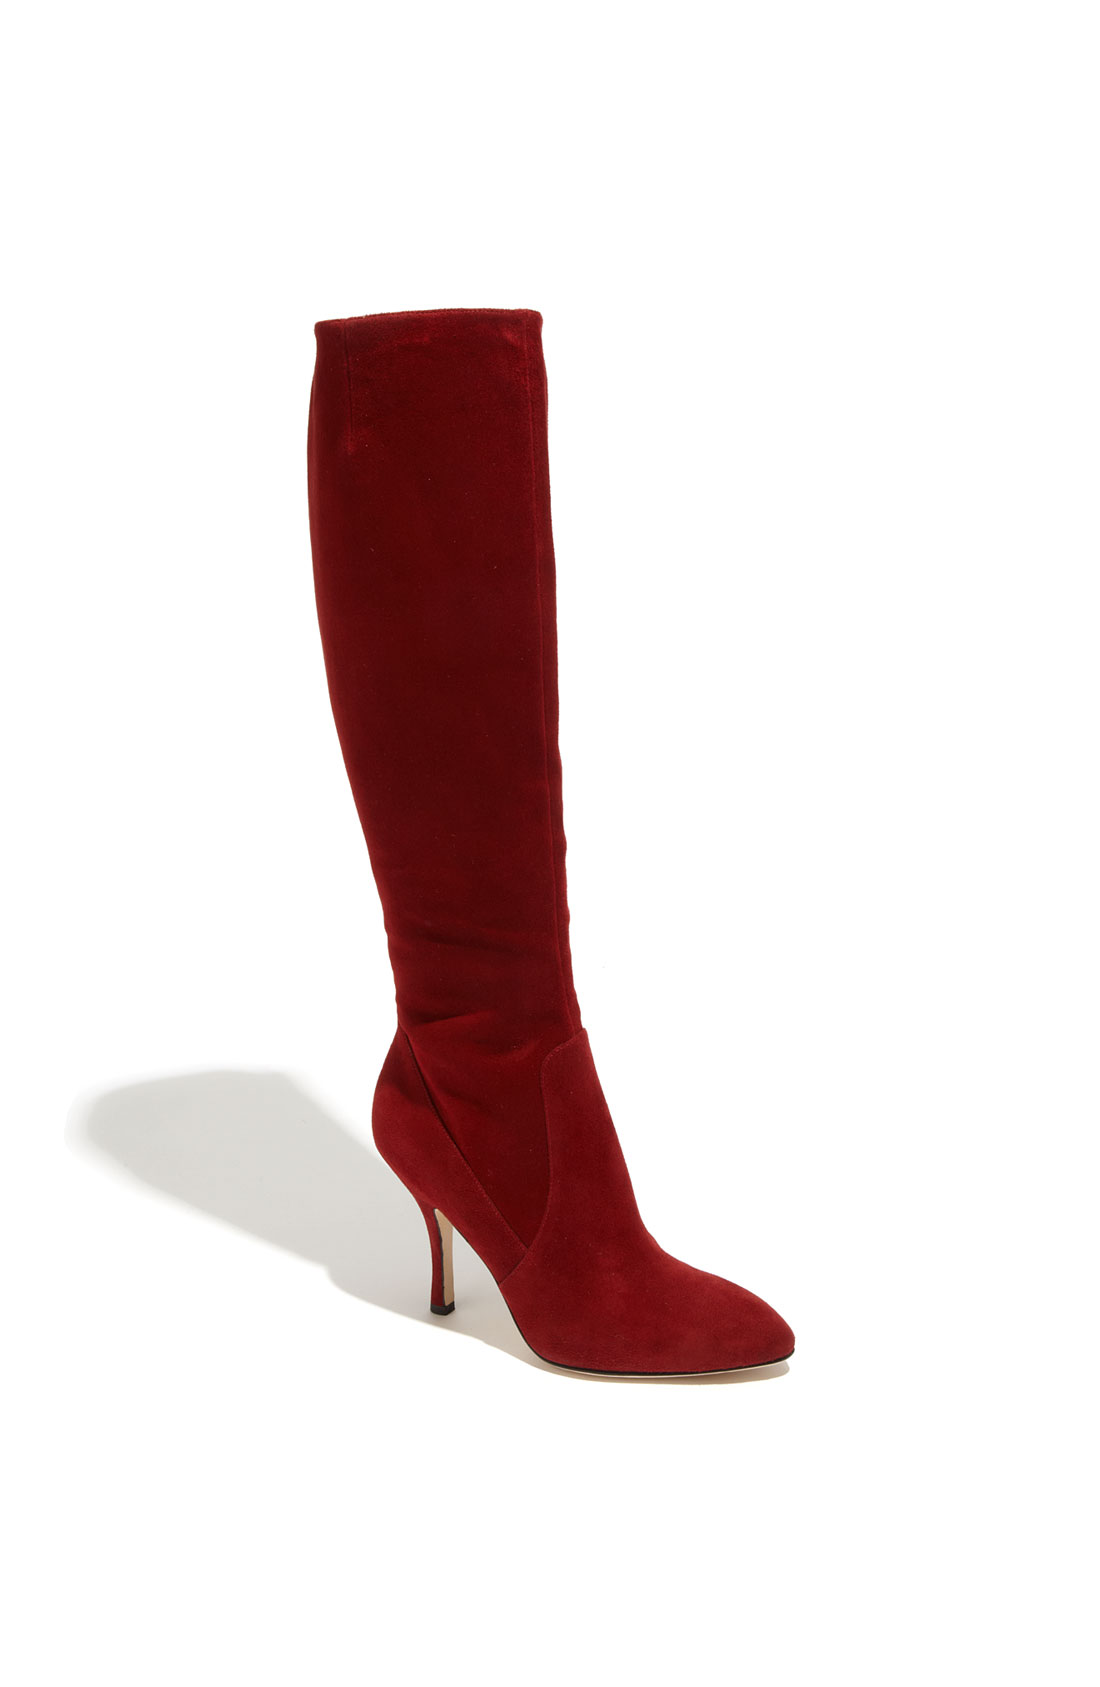 via spiga piper boot in suede lyst